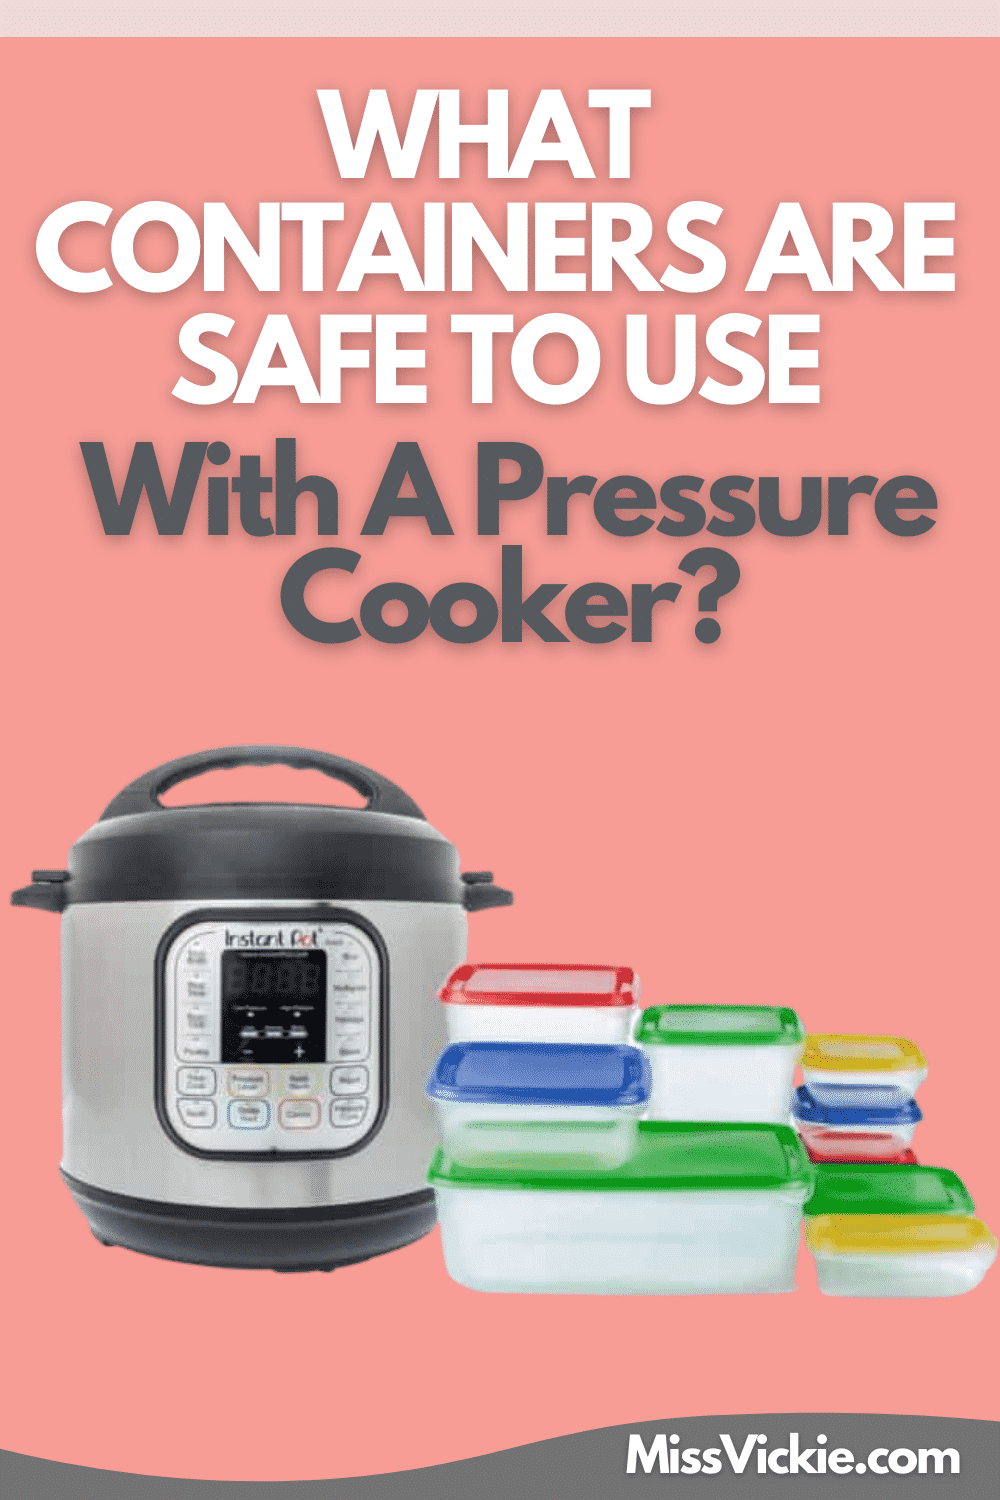 Containers That Are Safe For Pressure Cooker